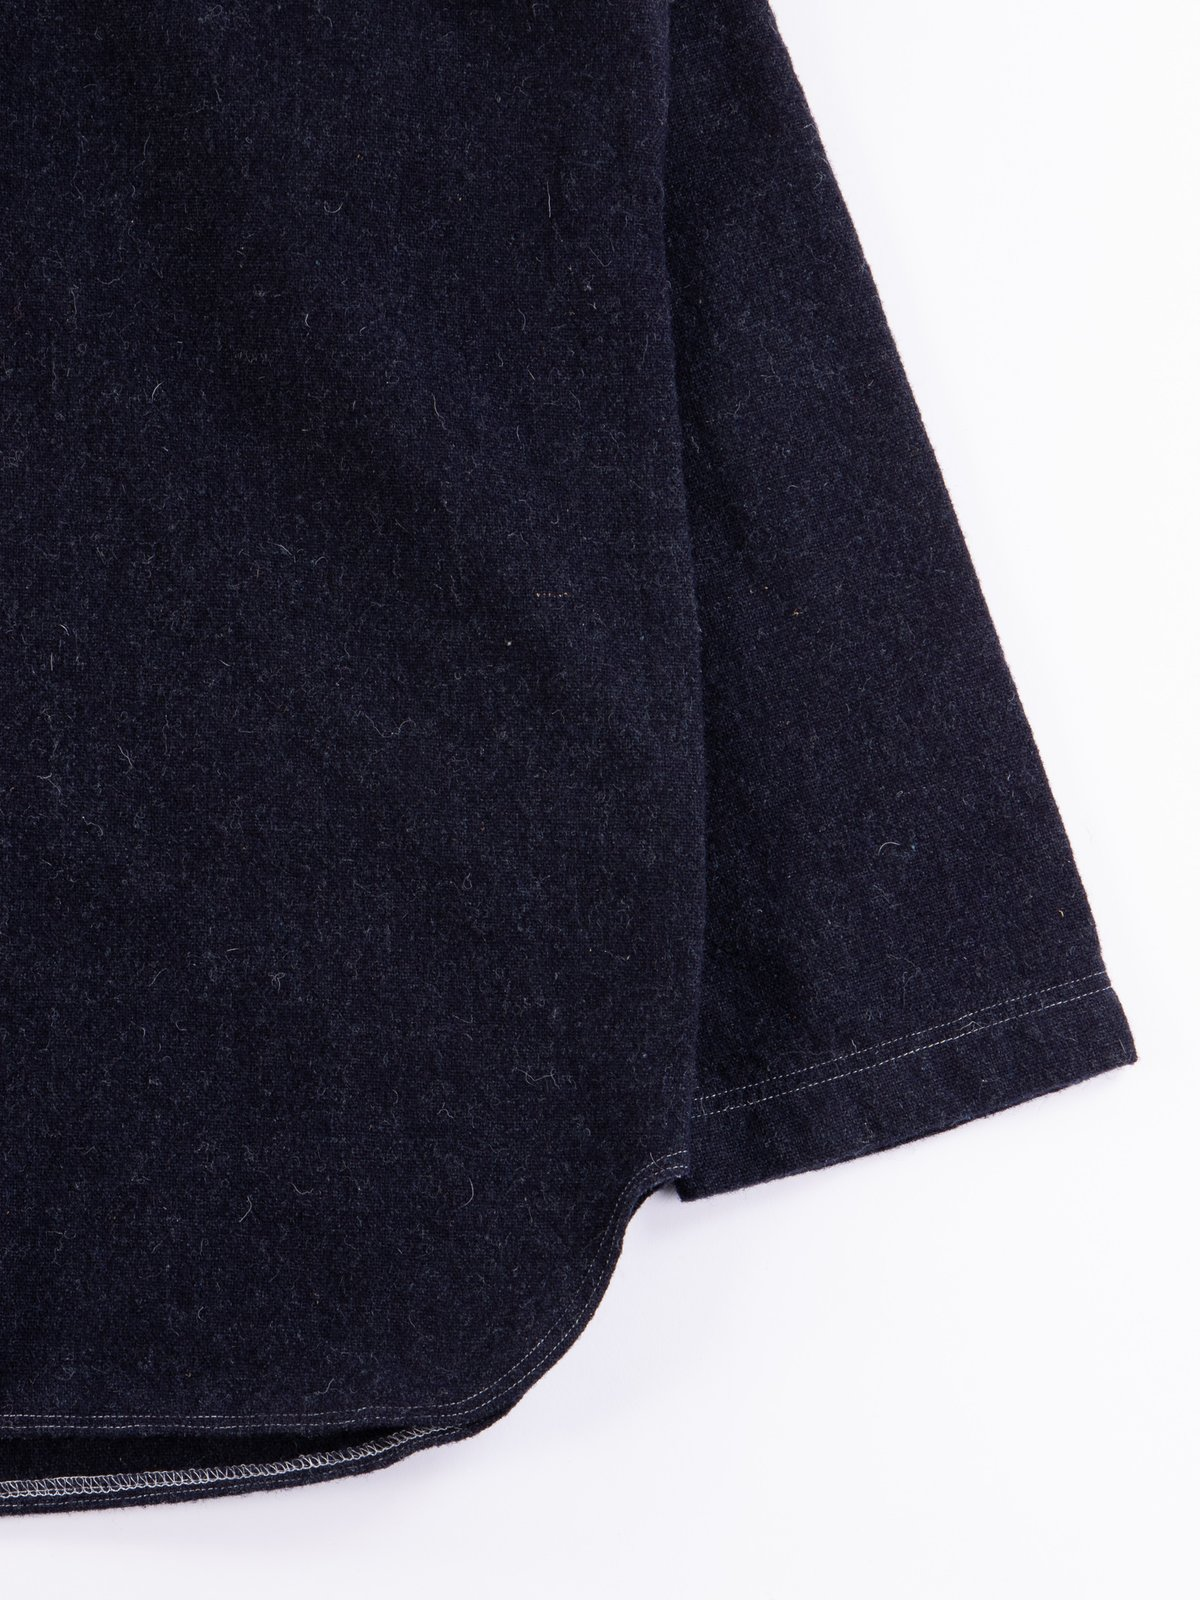 Navy Weavers Stock Pullover Tail Shirt - Image 4